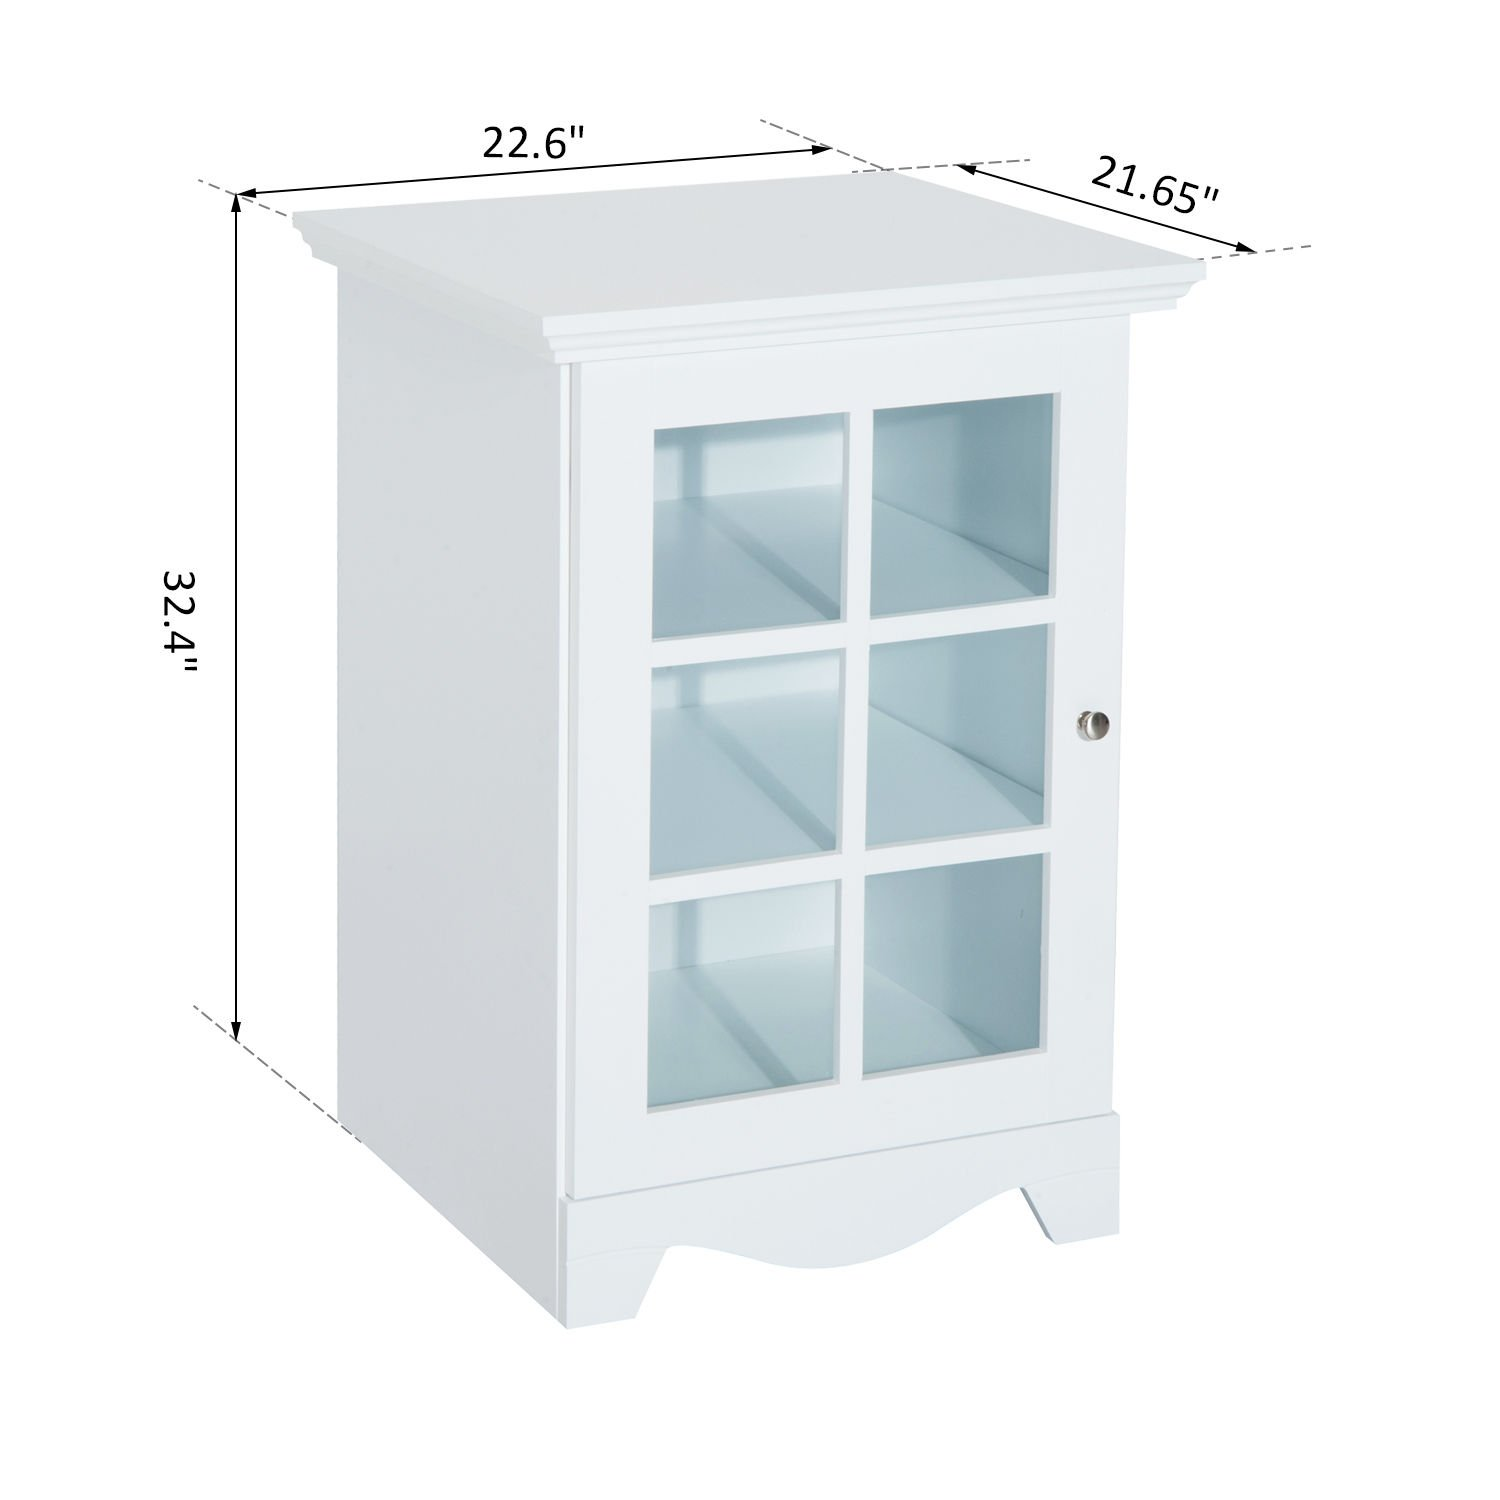 New White Wood Cabinet Storage Hutch Kitchen Bathroom Bedroom Single Glassed Door Shelves by totoshop (Image #2)